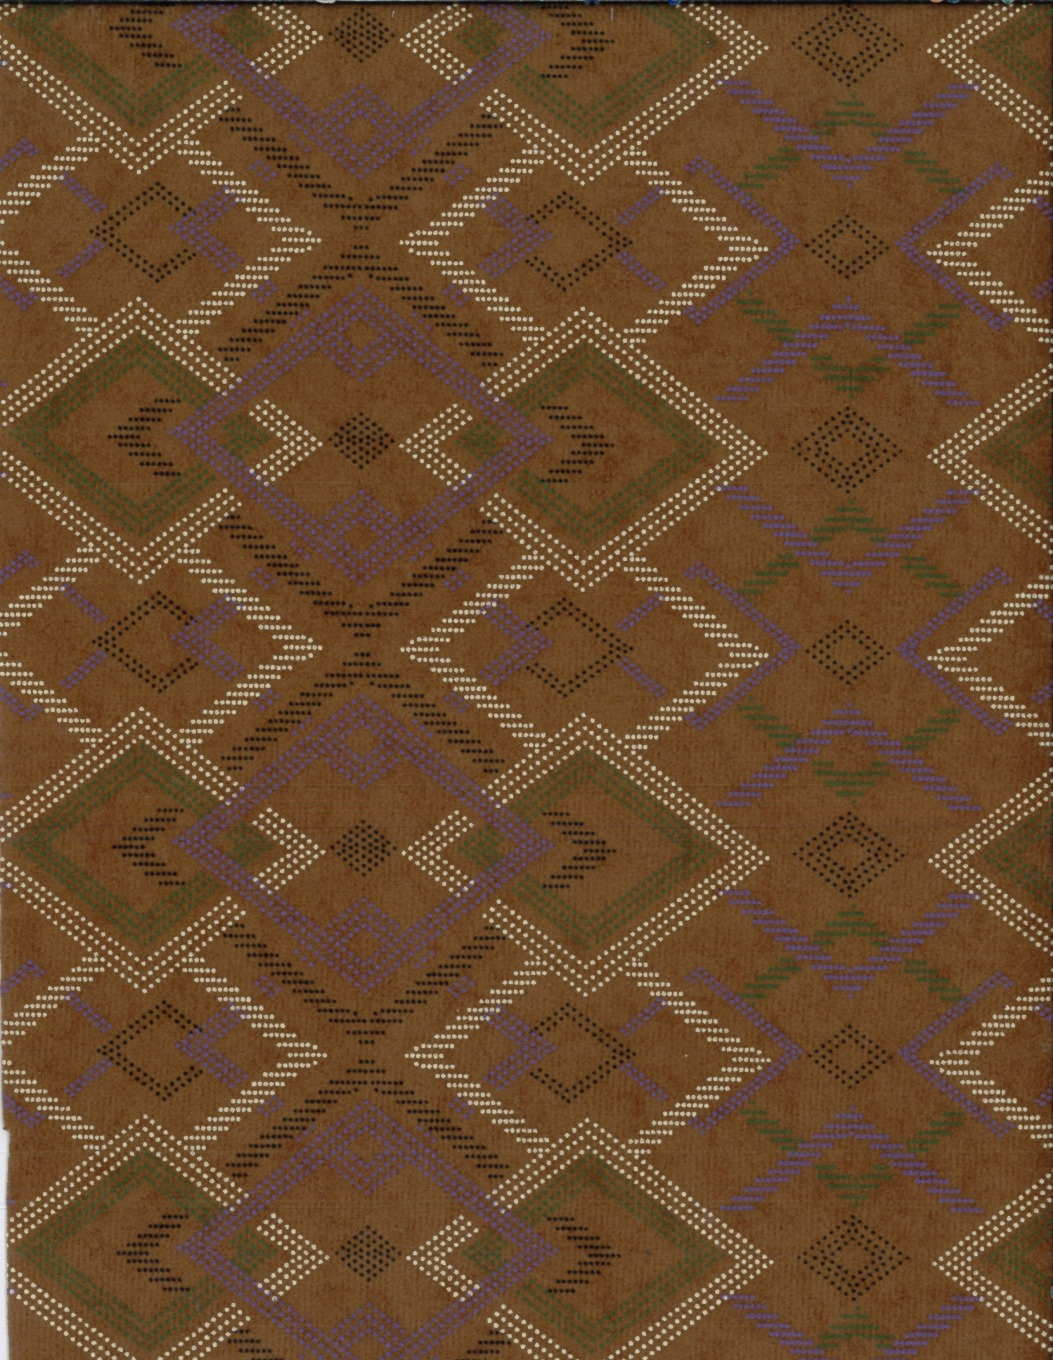 Costume Suedecloth-Aztec Puff Brown Aloba Polyester Fabric